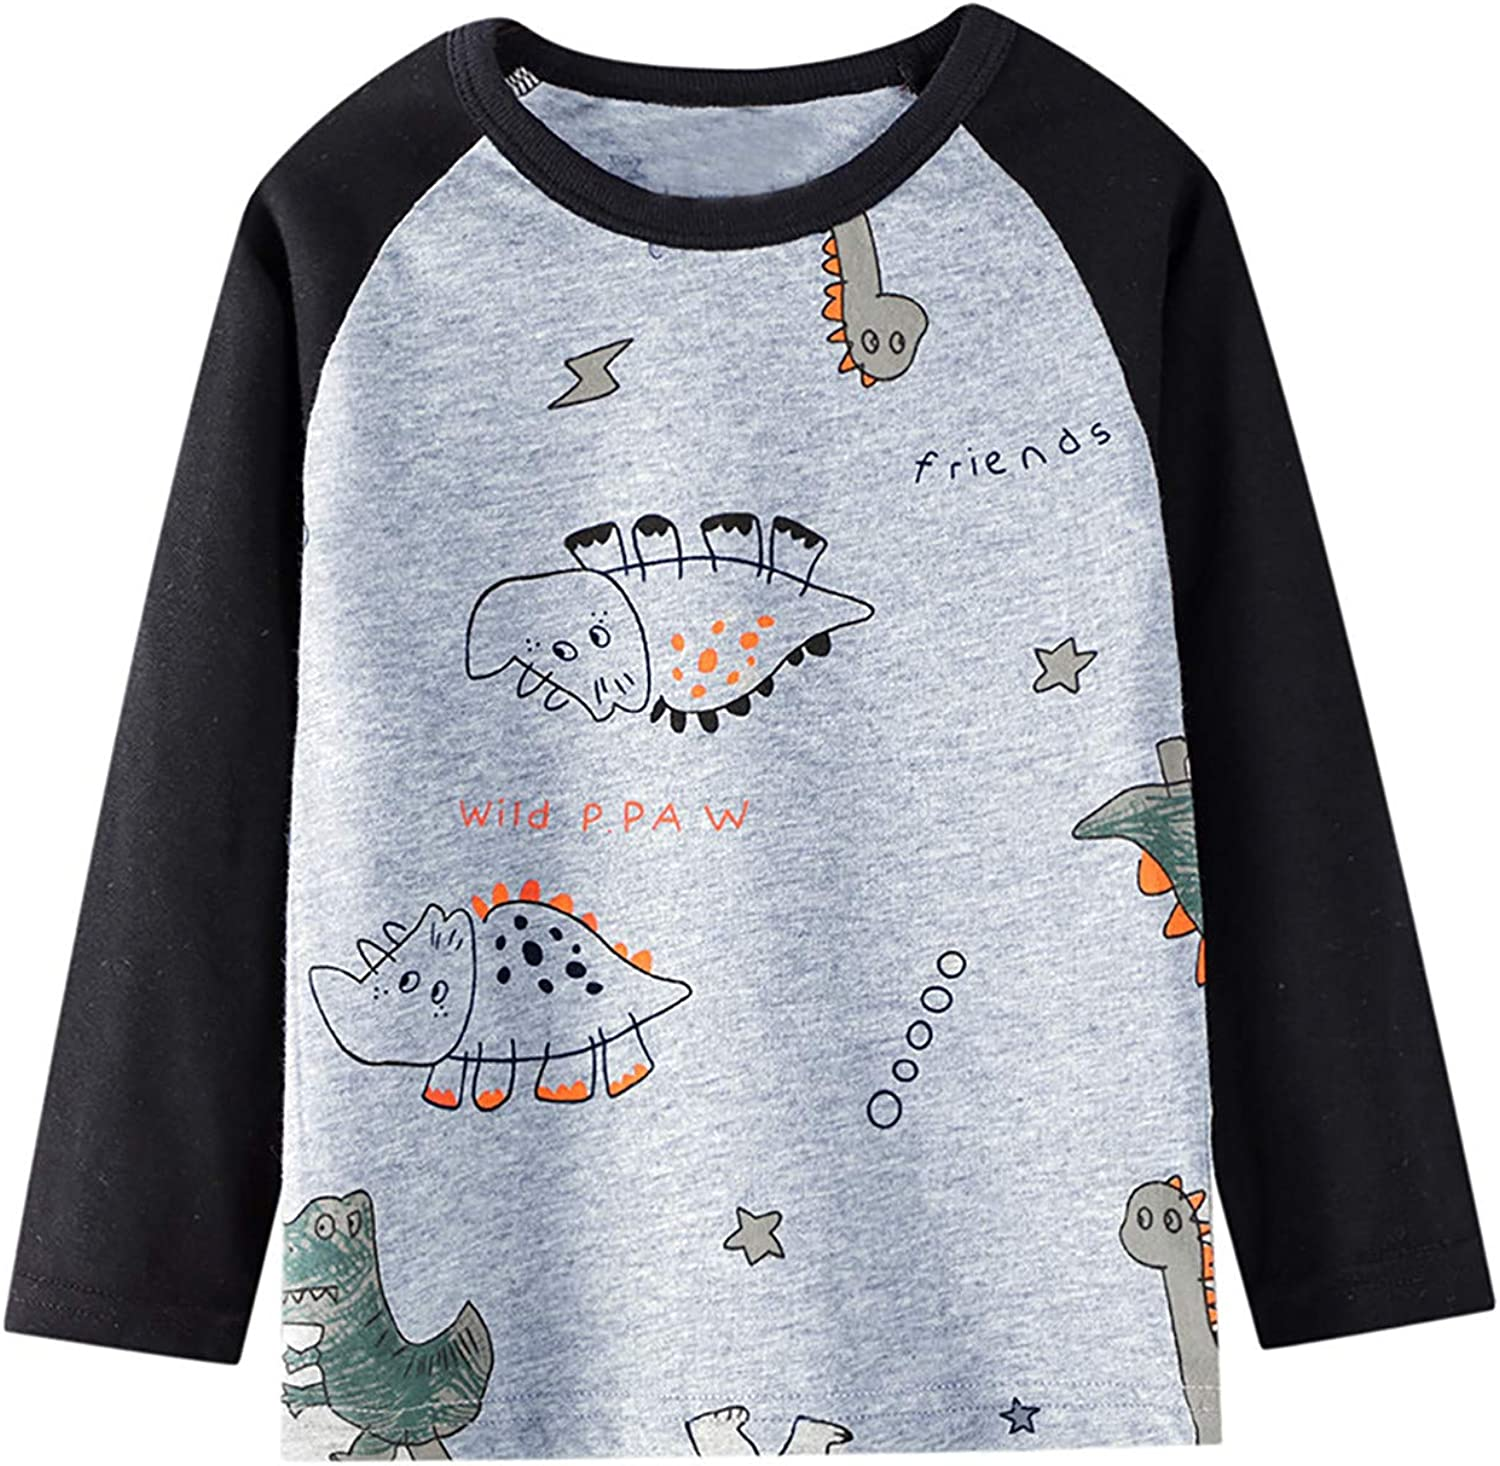 LaLaMa Little Boys Cotton Sweatshirts Toddler Casual Long Sleeve Tee T-Shirts Cartoon Pullover Tops for Kids 2-8T